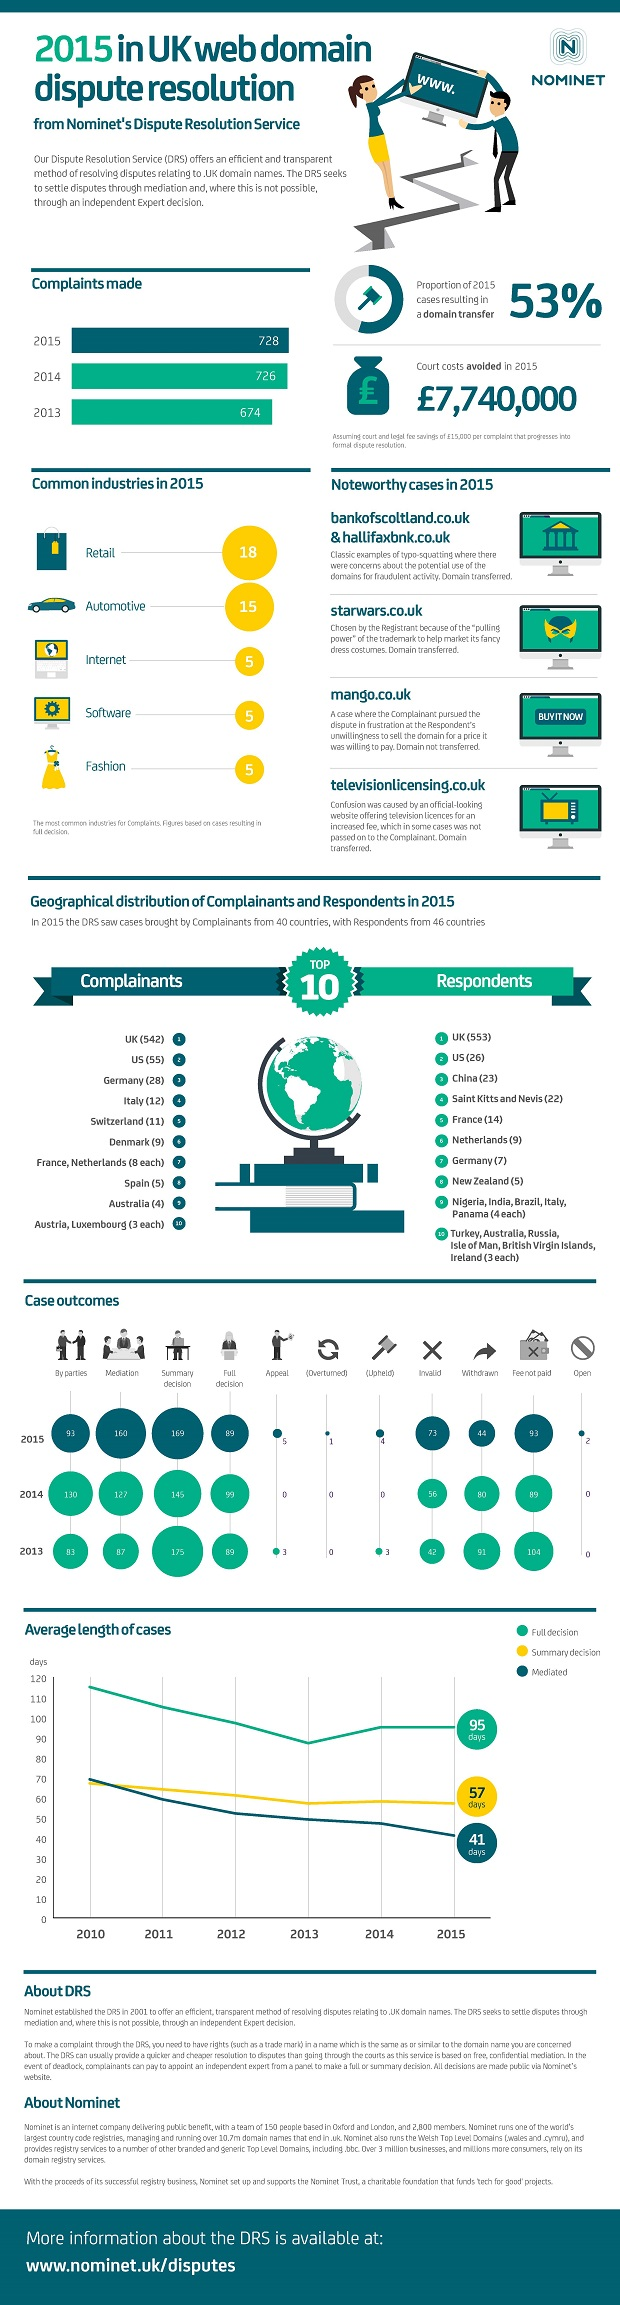 Nominet-DRS-Report-Infographic-2015.jpg